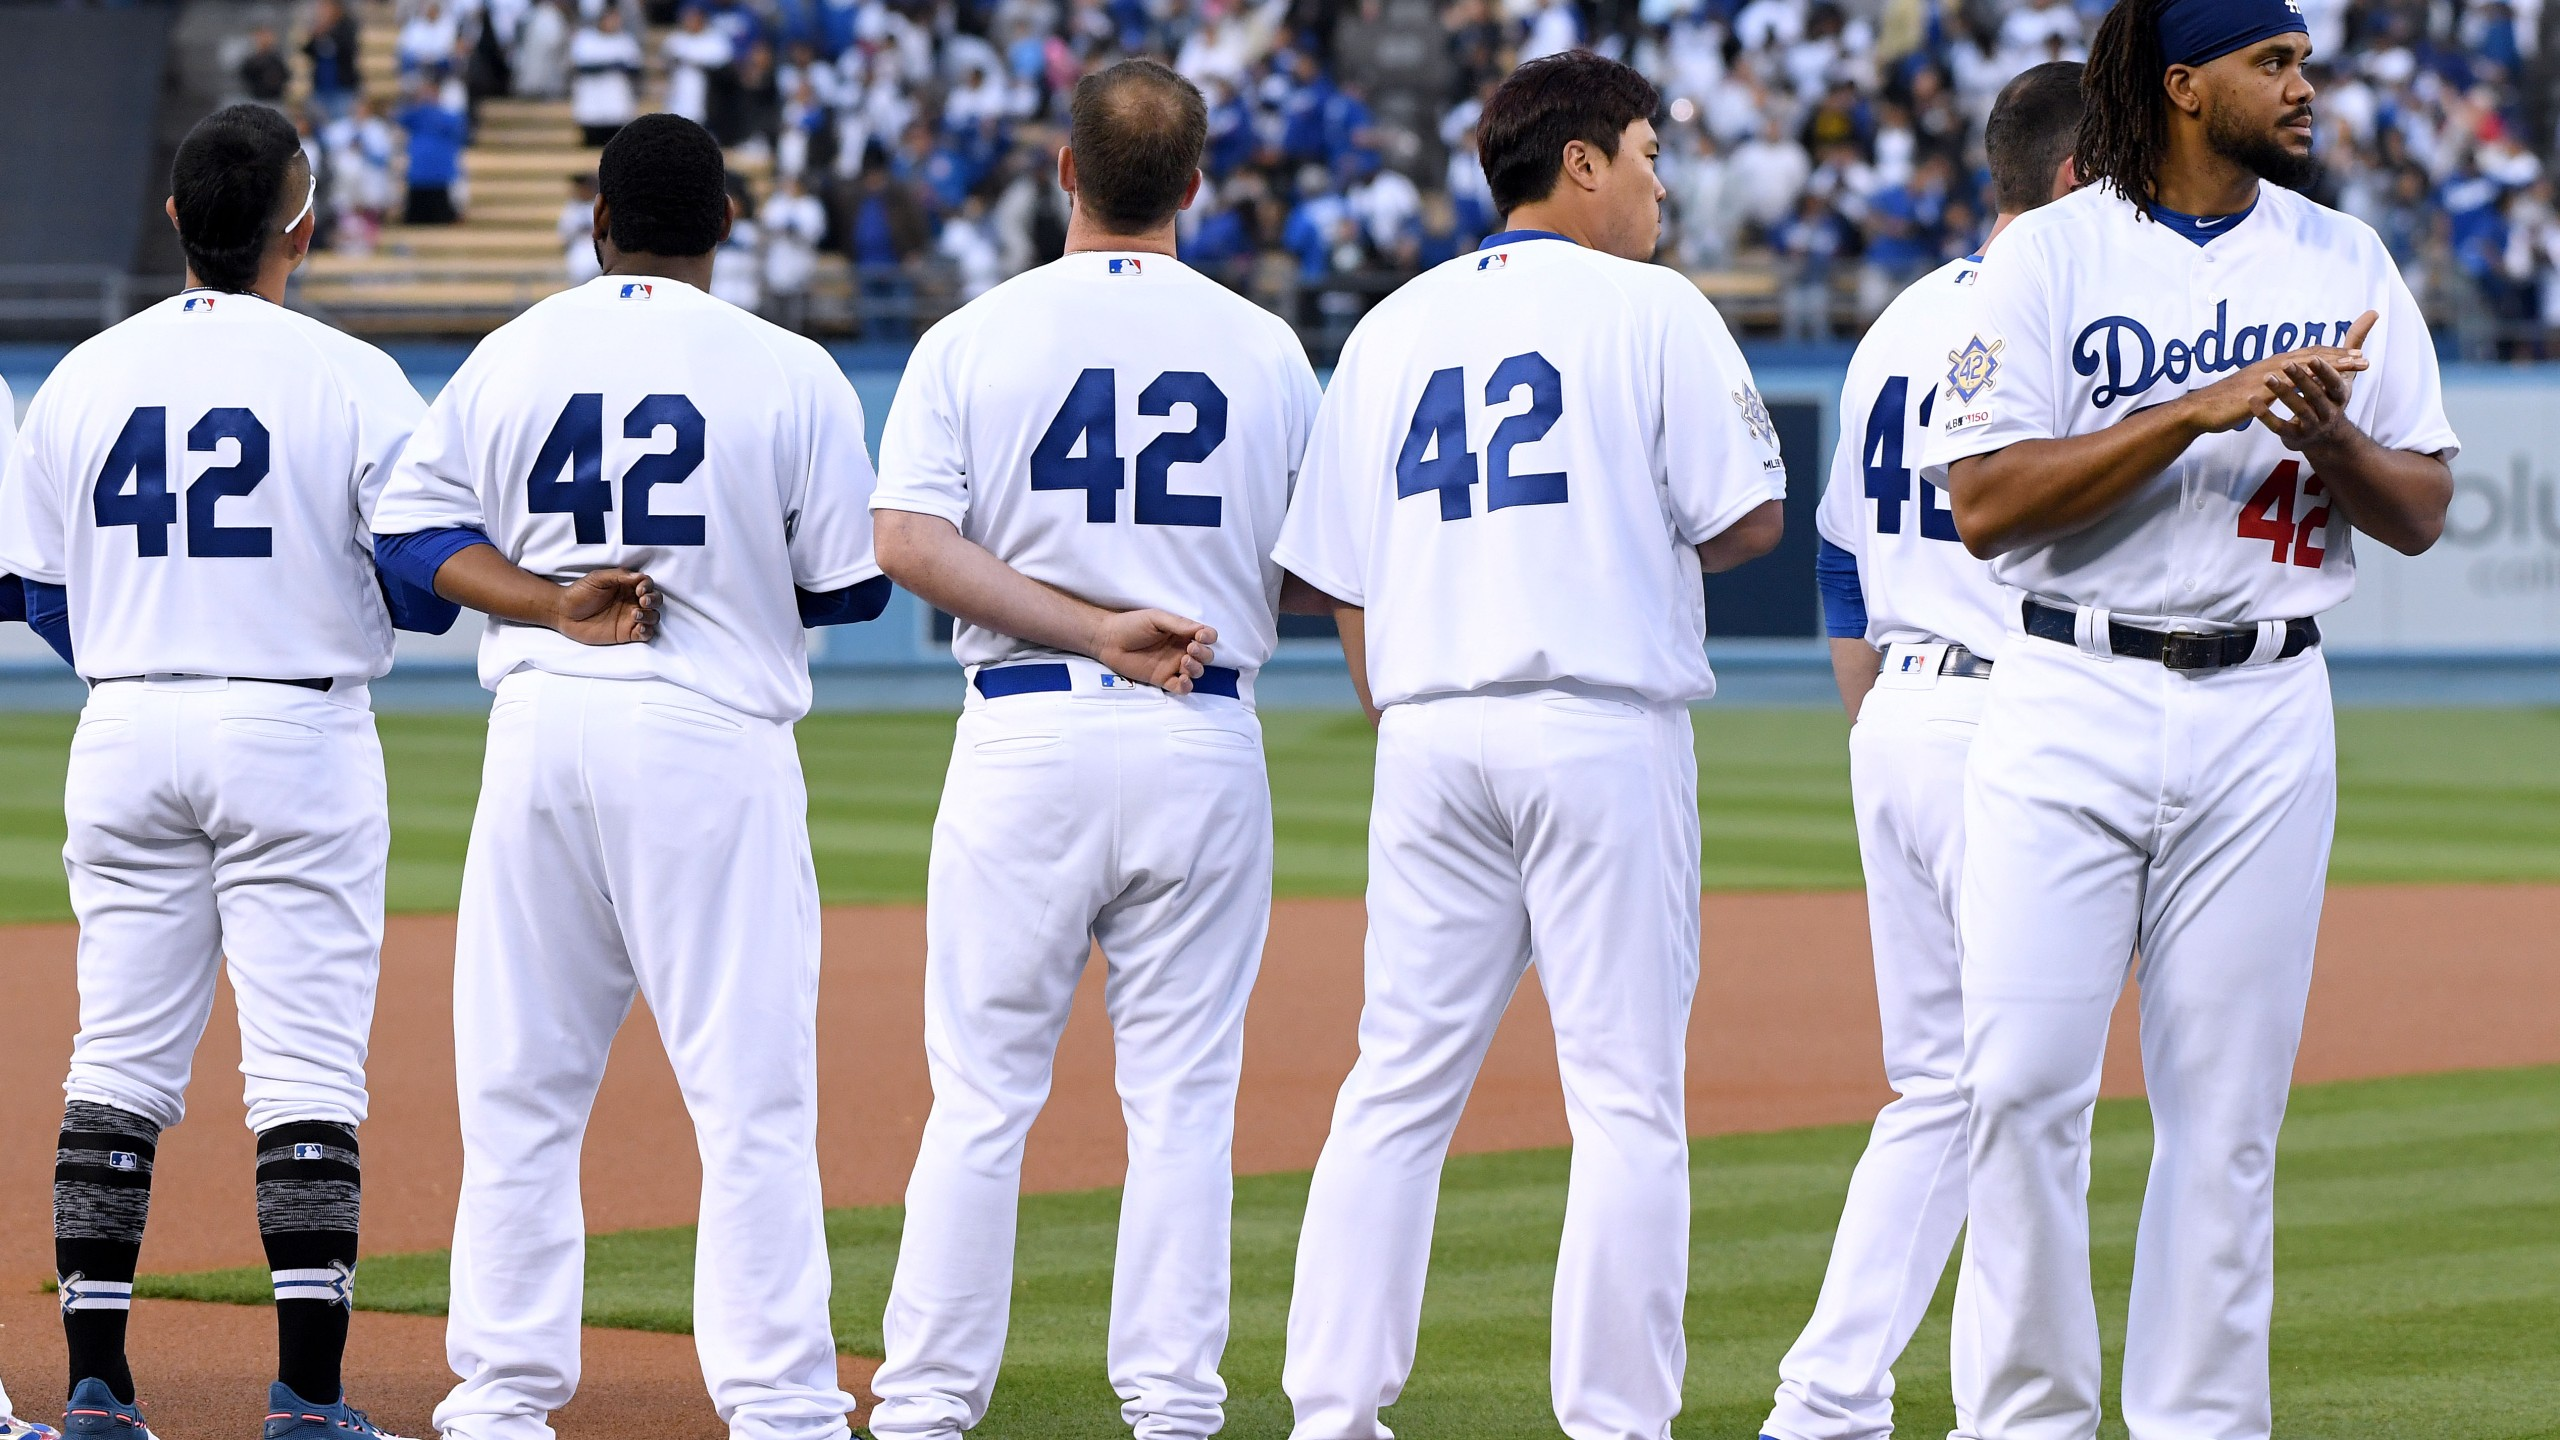 Kenley Jansen, far right, and other members of the Los Angeles Dodgers line up for the National Anthem before a game against the Cincinnati Reds on Jackie Robinson Day at Dodger Stadium on April 15, 2019. (Credit: Harry How / Getty Images)